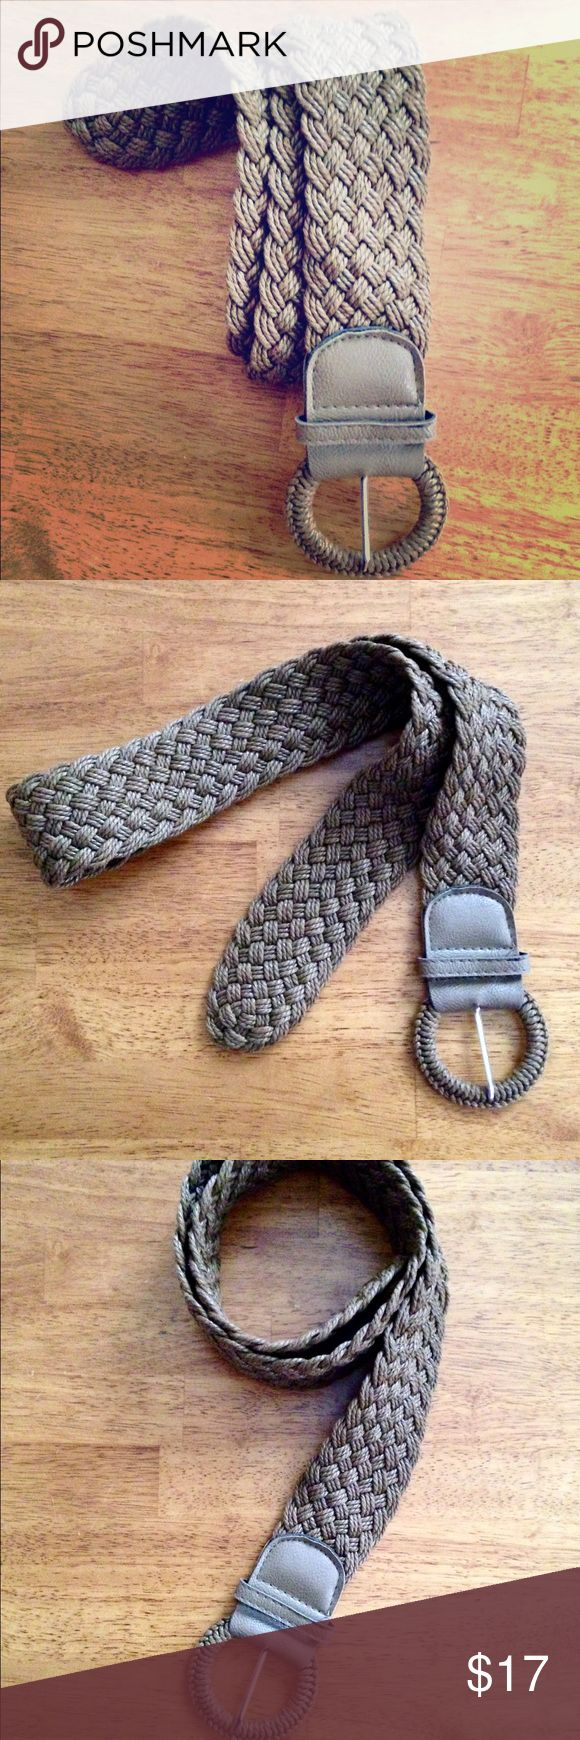 NWOT • Brown Braided Thick Buckle Belt Brown Braided Thick Buckle Belt • NEVER WORN • BRAND NEW WITHOUT TAGS • Beautiful belt ✨🎉EXCELLENT CONDITION🎉✨ Accessories Belts